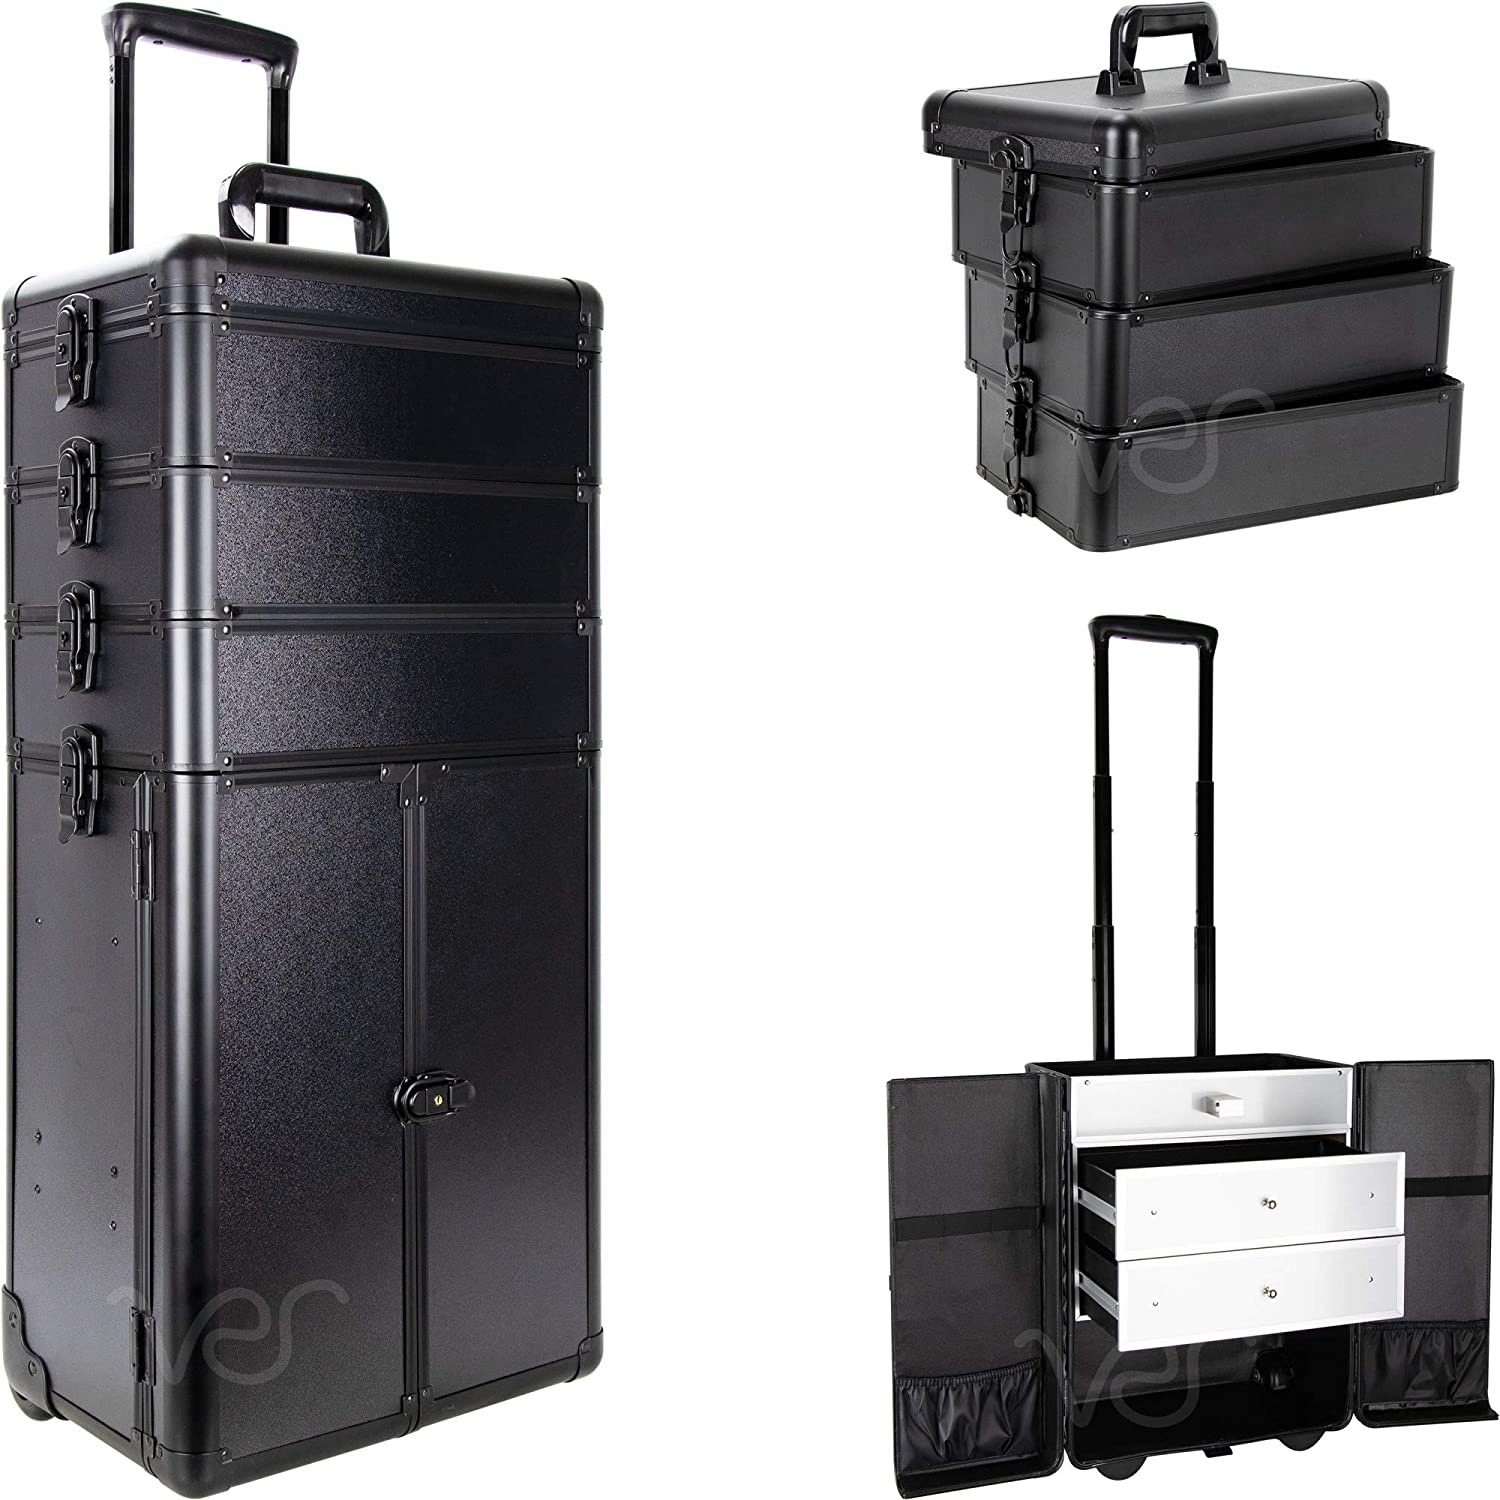 SUNRISE Makeup Rolling Case I3366 4 in 1 Professional Organizer, 3 Stackable Trays and 2 Drawers, Locking with Mirror, Black Matte